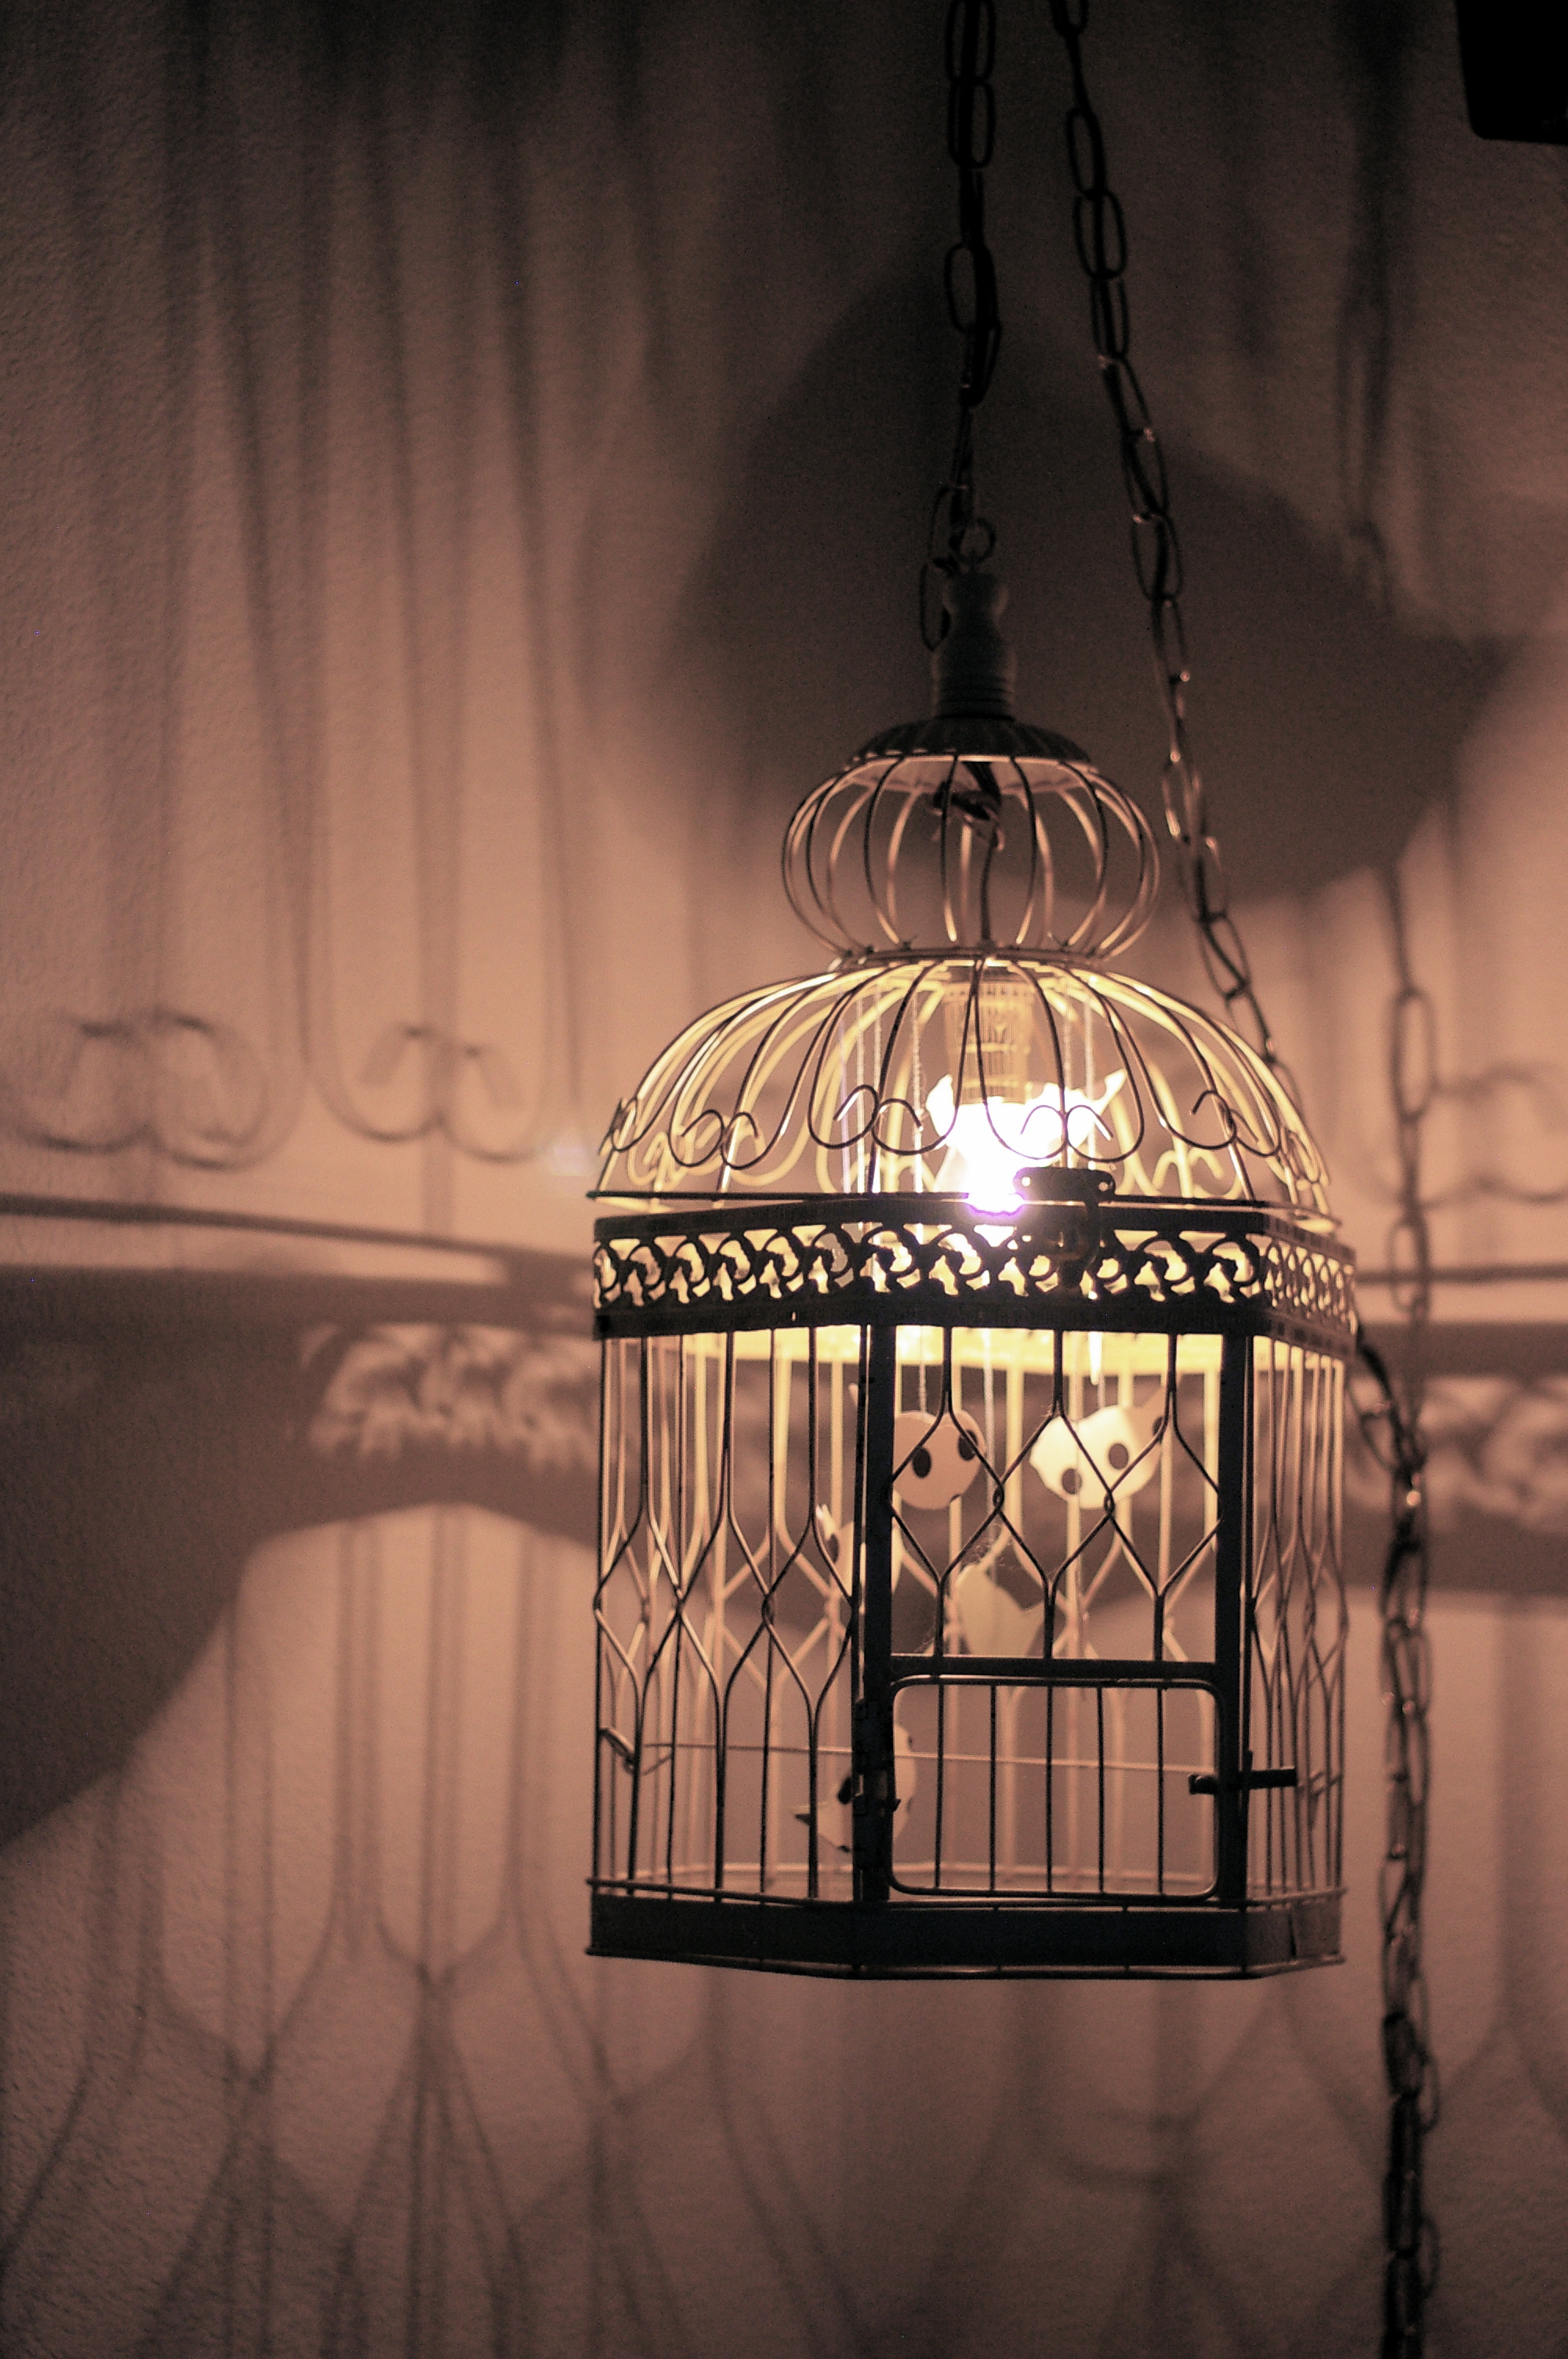 lamp no under minutes birdcage work diy in bless electrical required of